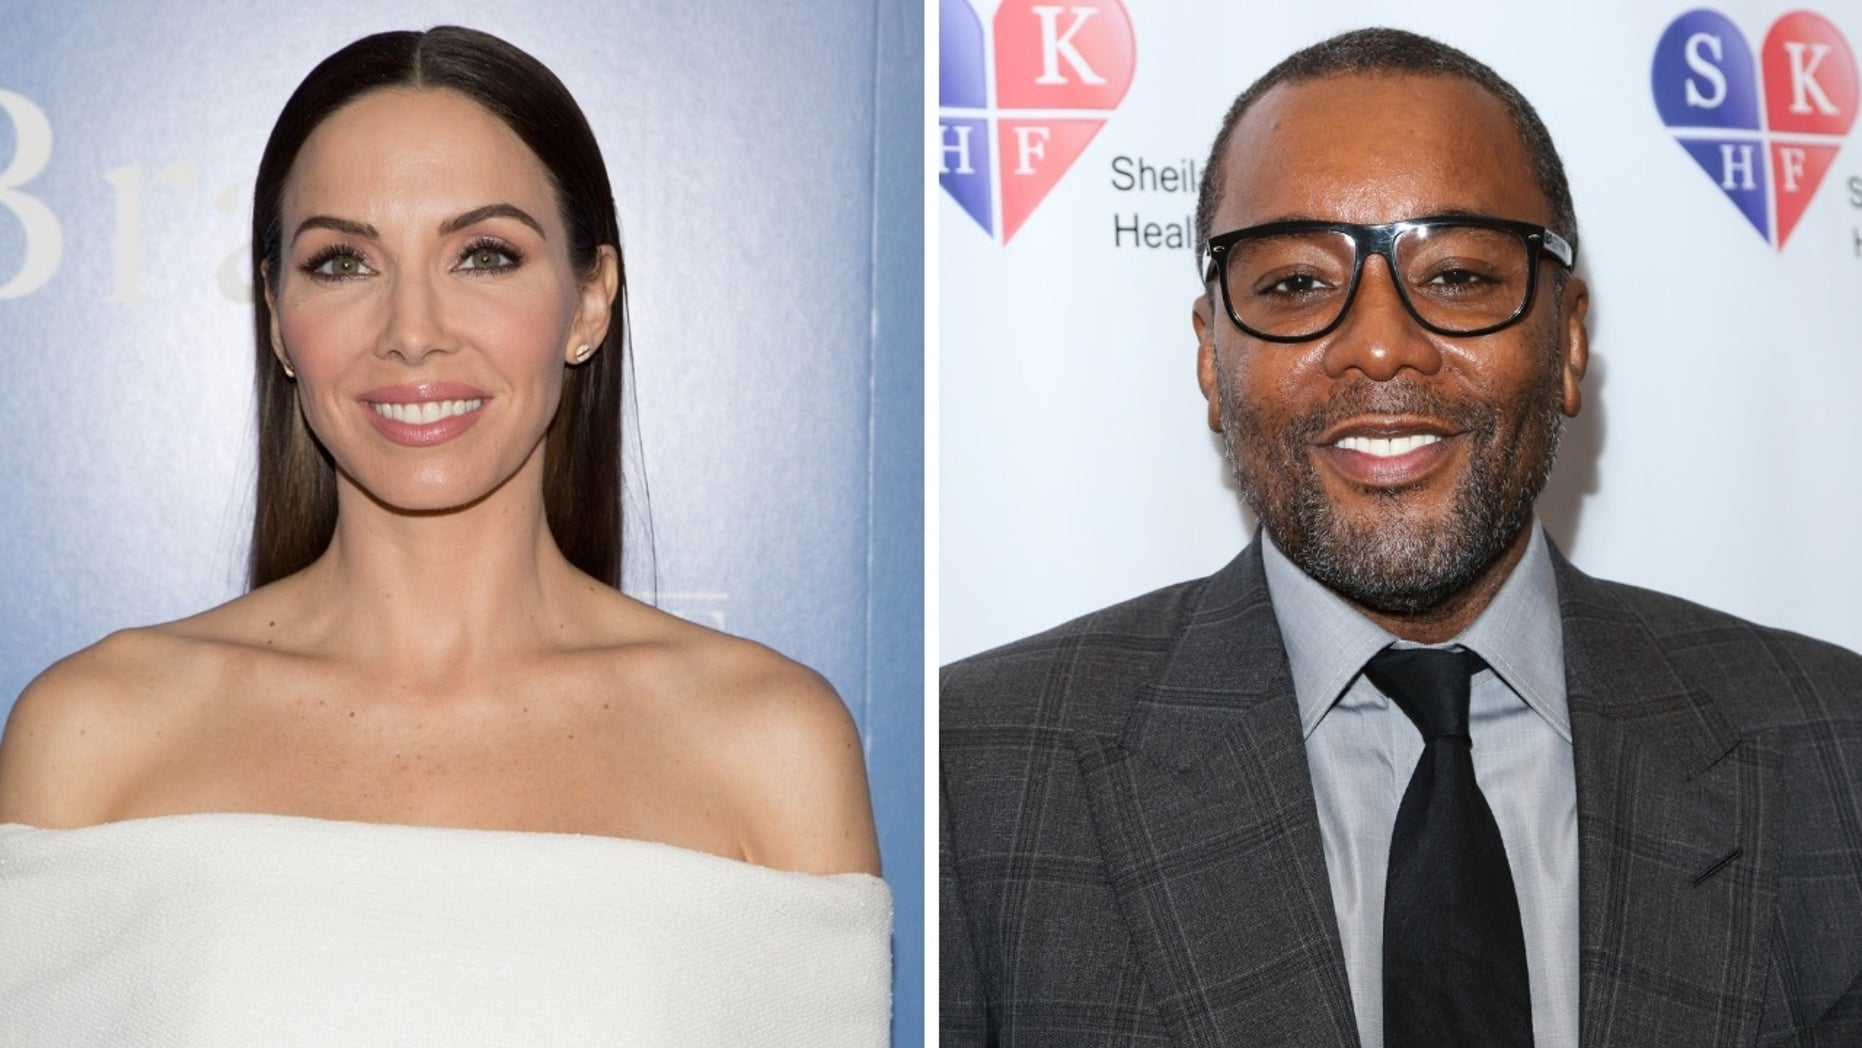 Whitney Cummings and Lee Daniels are teaming up to create a #MeToo-themed comedy series.